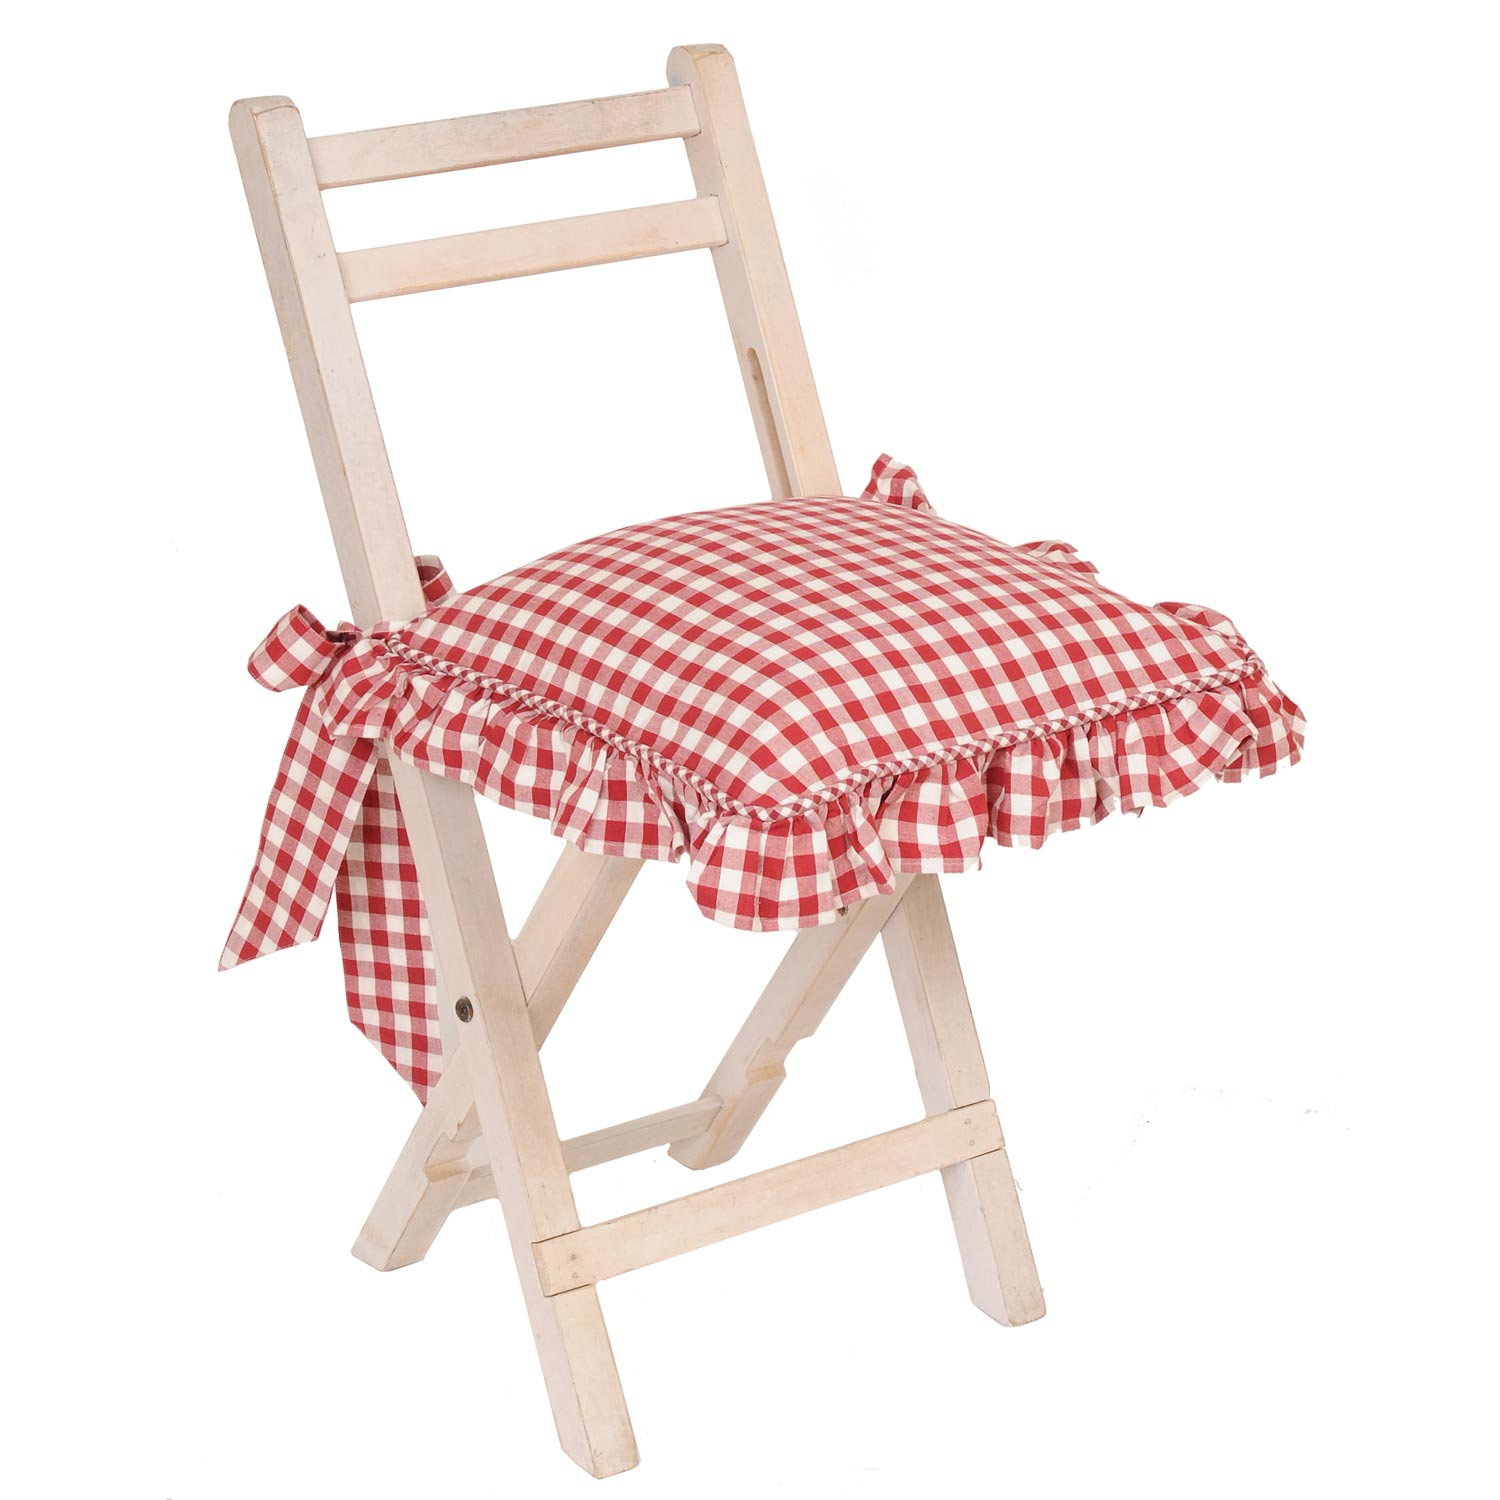 Clayre & Eef webshop::Home textiles::Cushions and fillers::Chair cushions and covers::CAO26N Chair cushion cover